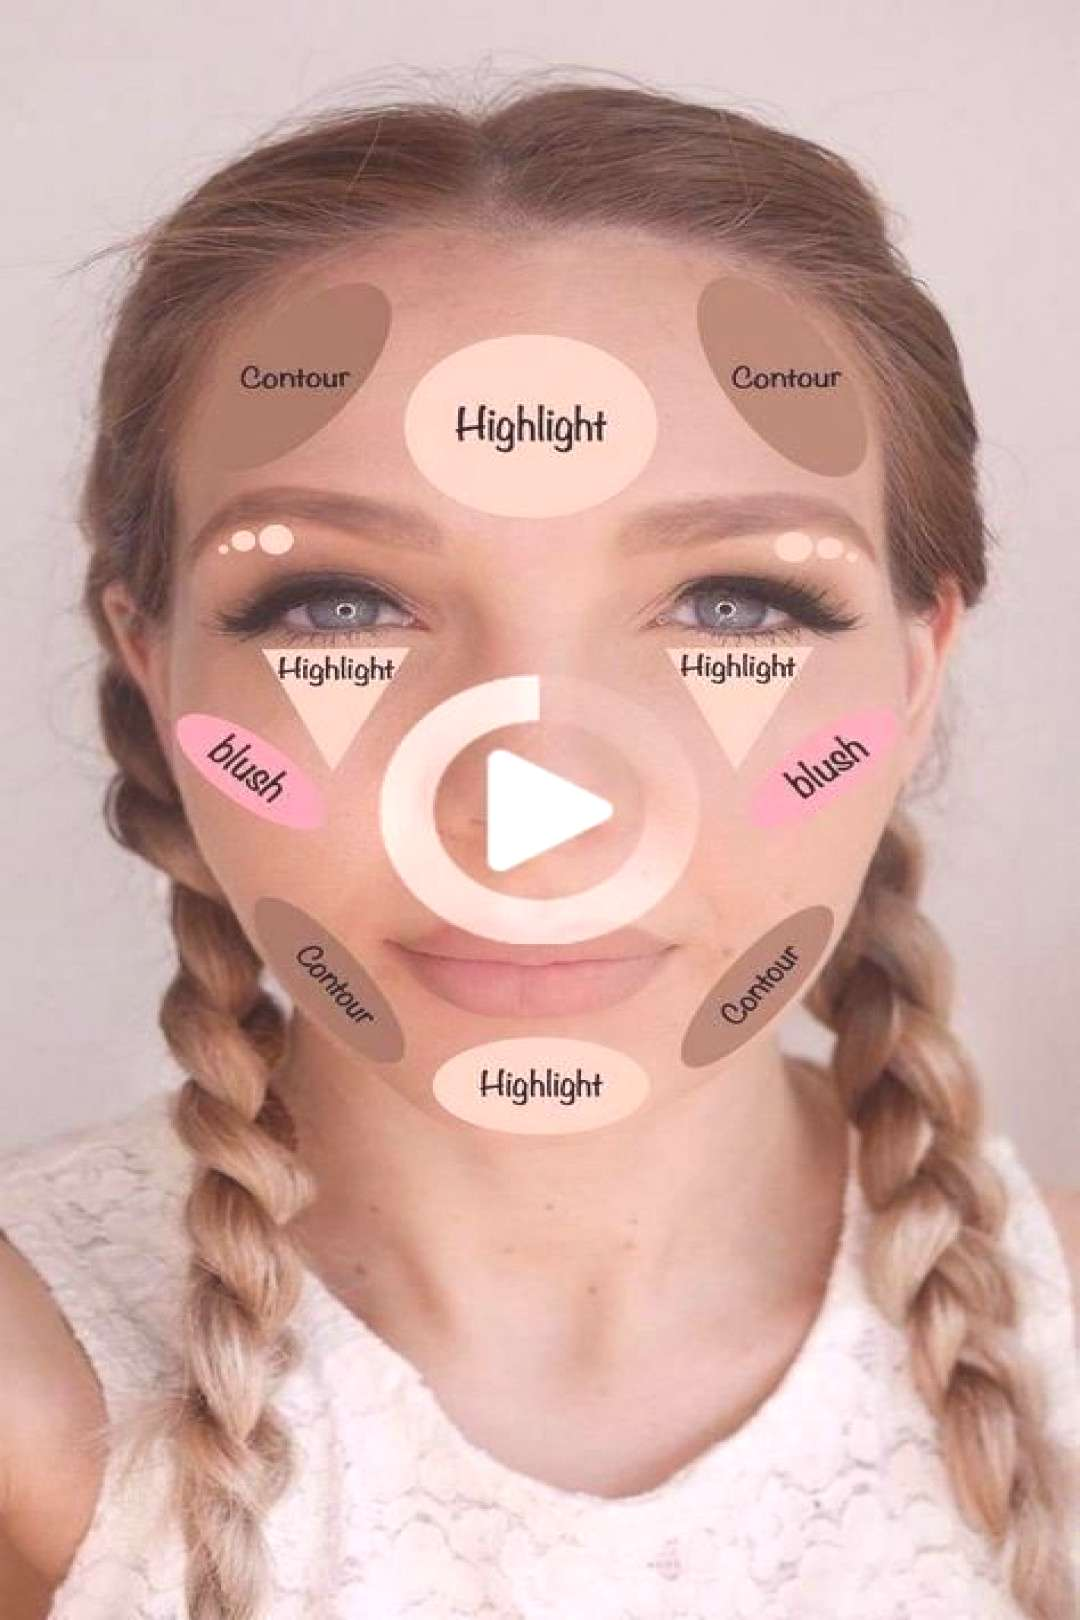 how to make a contouring easy tutorial revolutionary makeup technique how to make a contouring easy